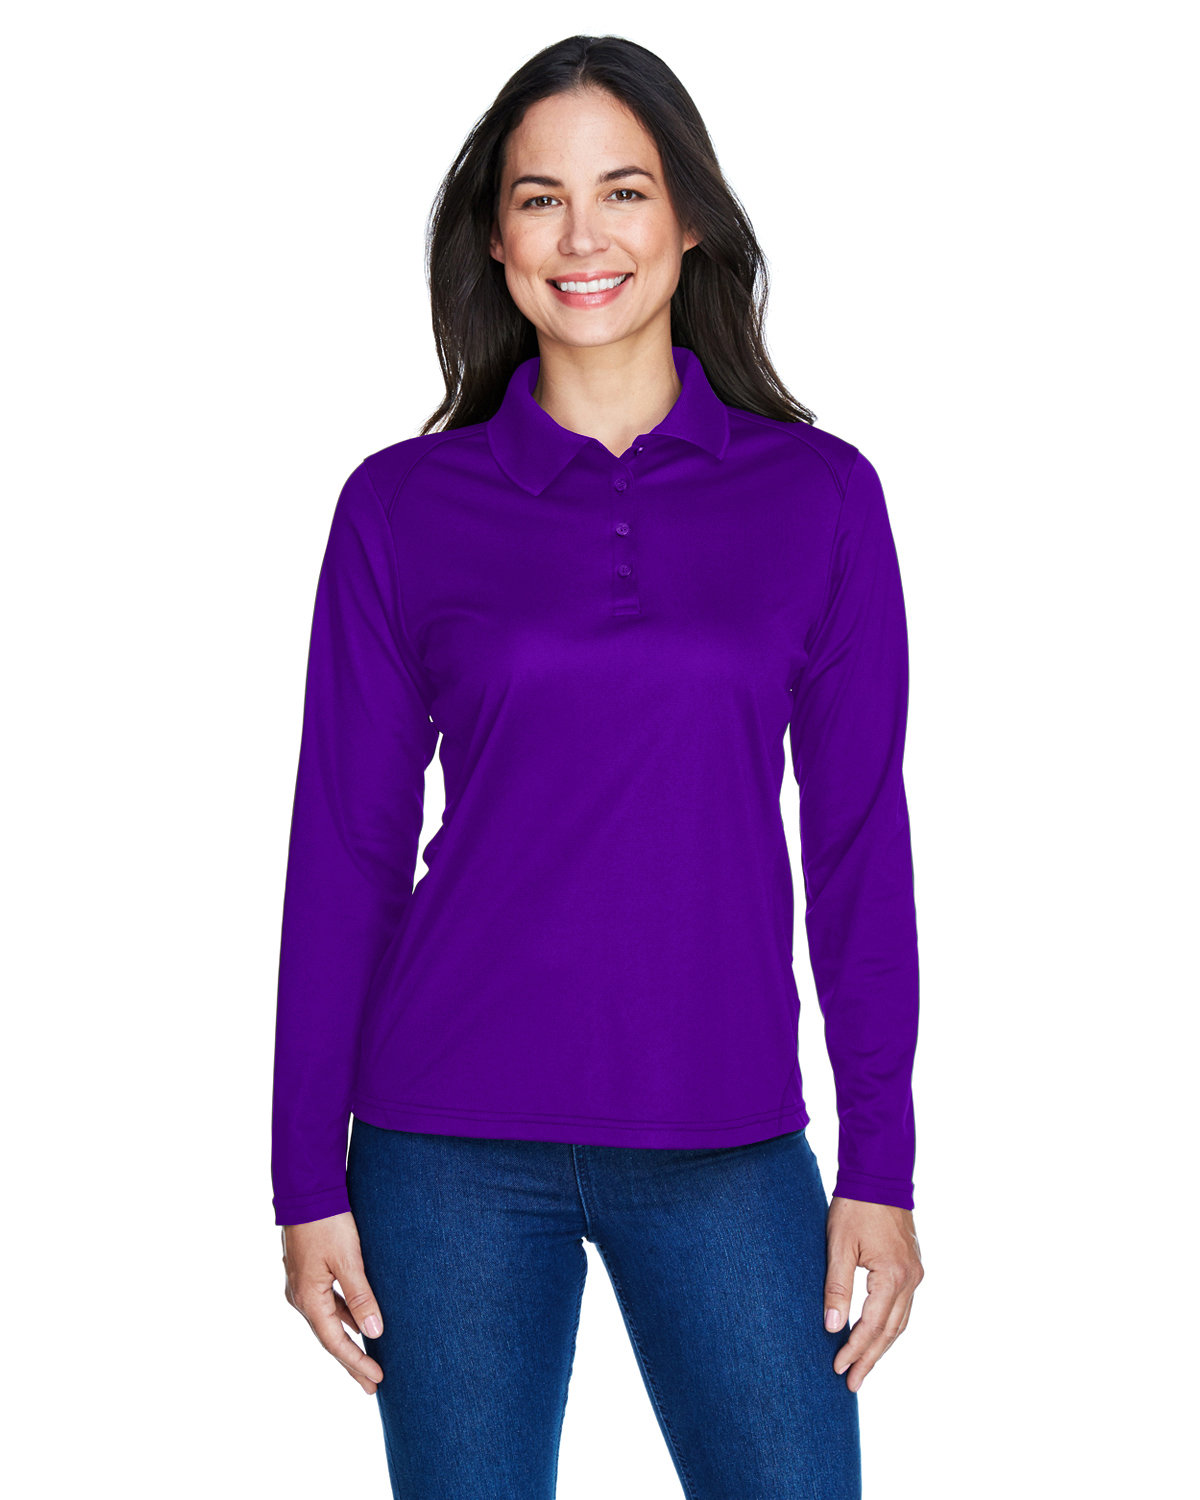 Extreme Ladies' Eperformance™ Snag Protection Long-Sleeve Polo CAMPUS PURPLE